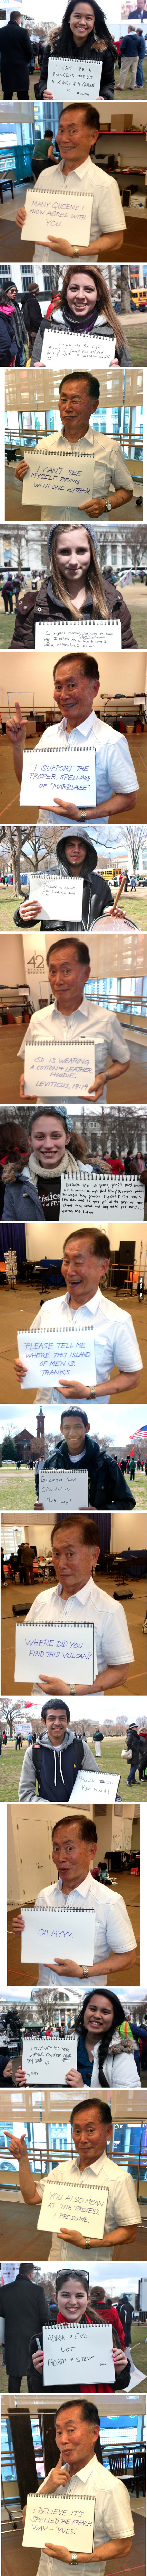 george takei responds to anti gay marriage